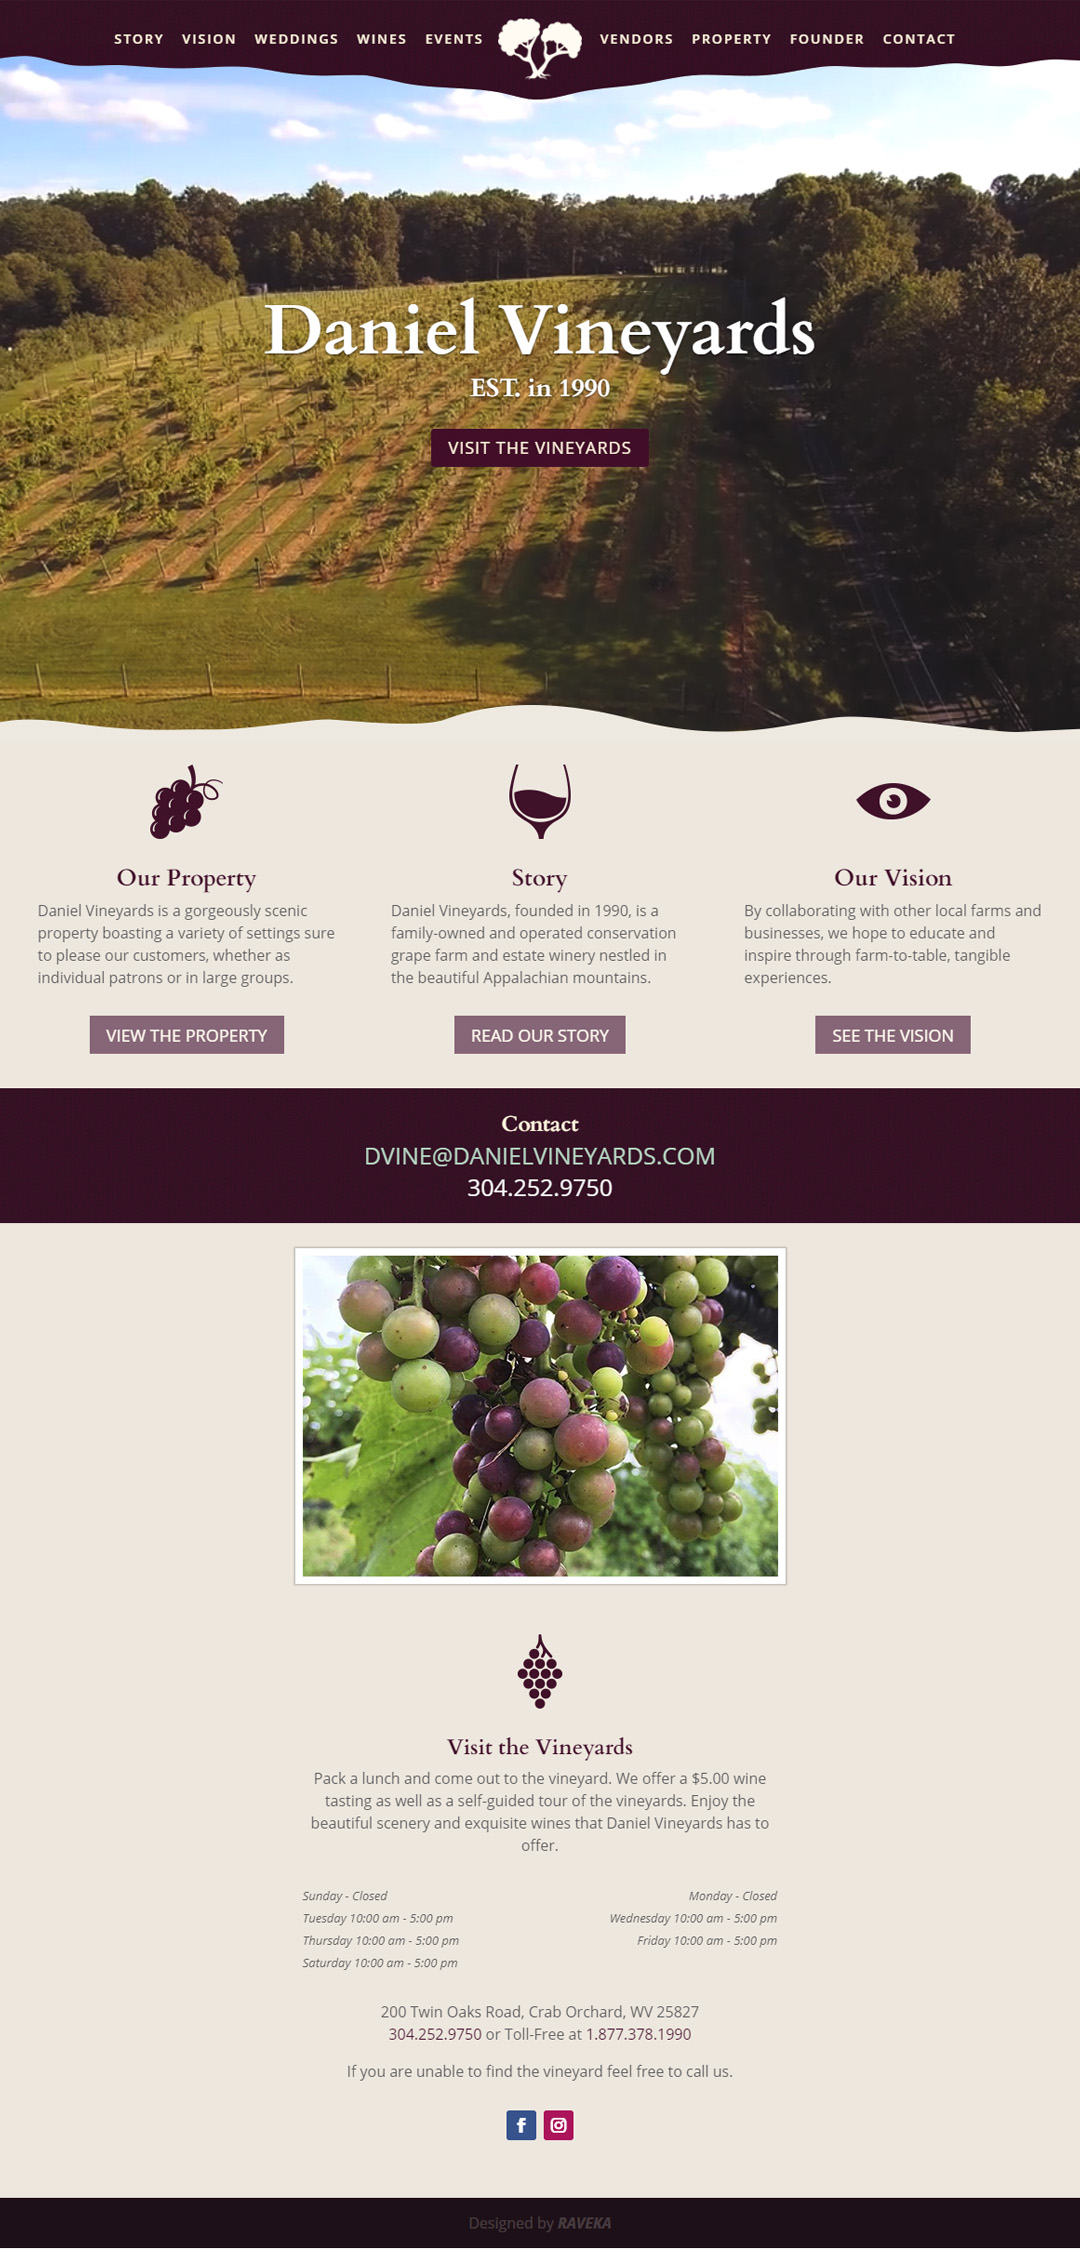 Daniel Vineyards Website